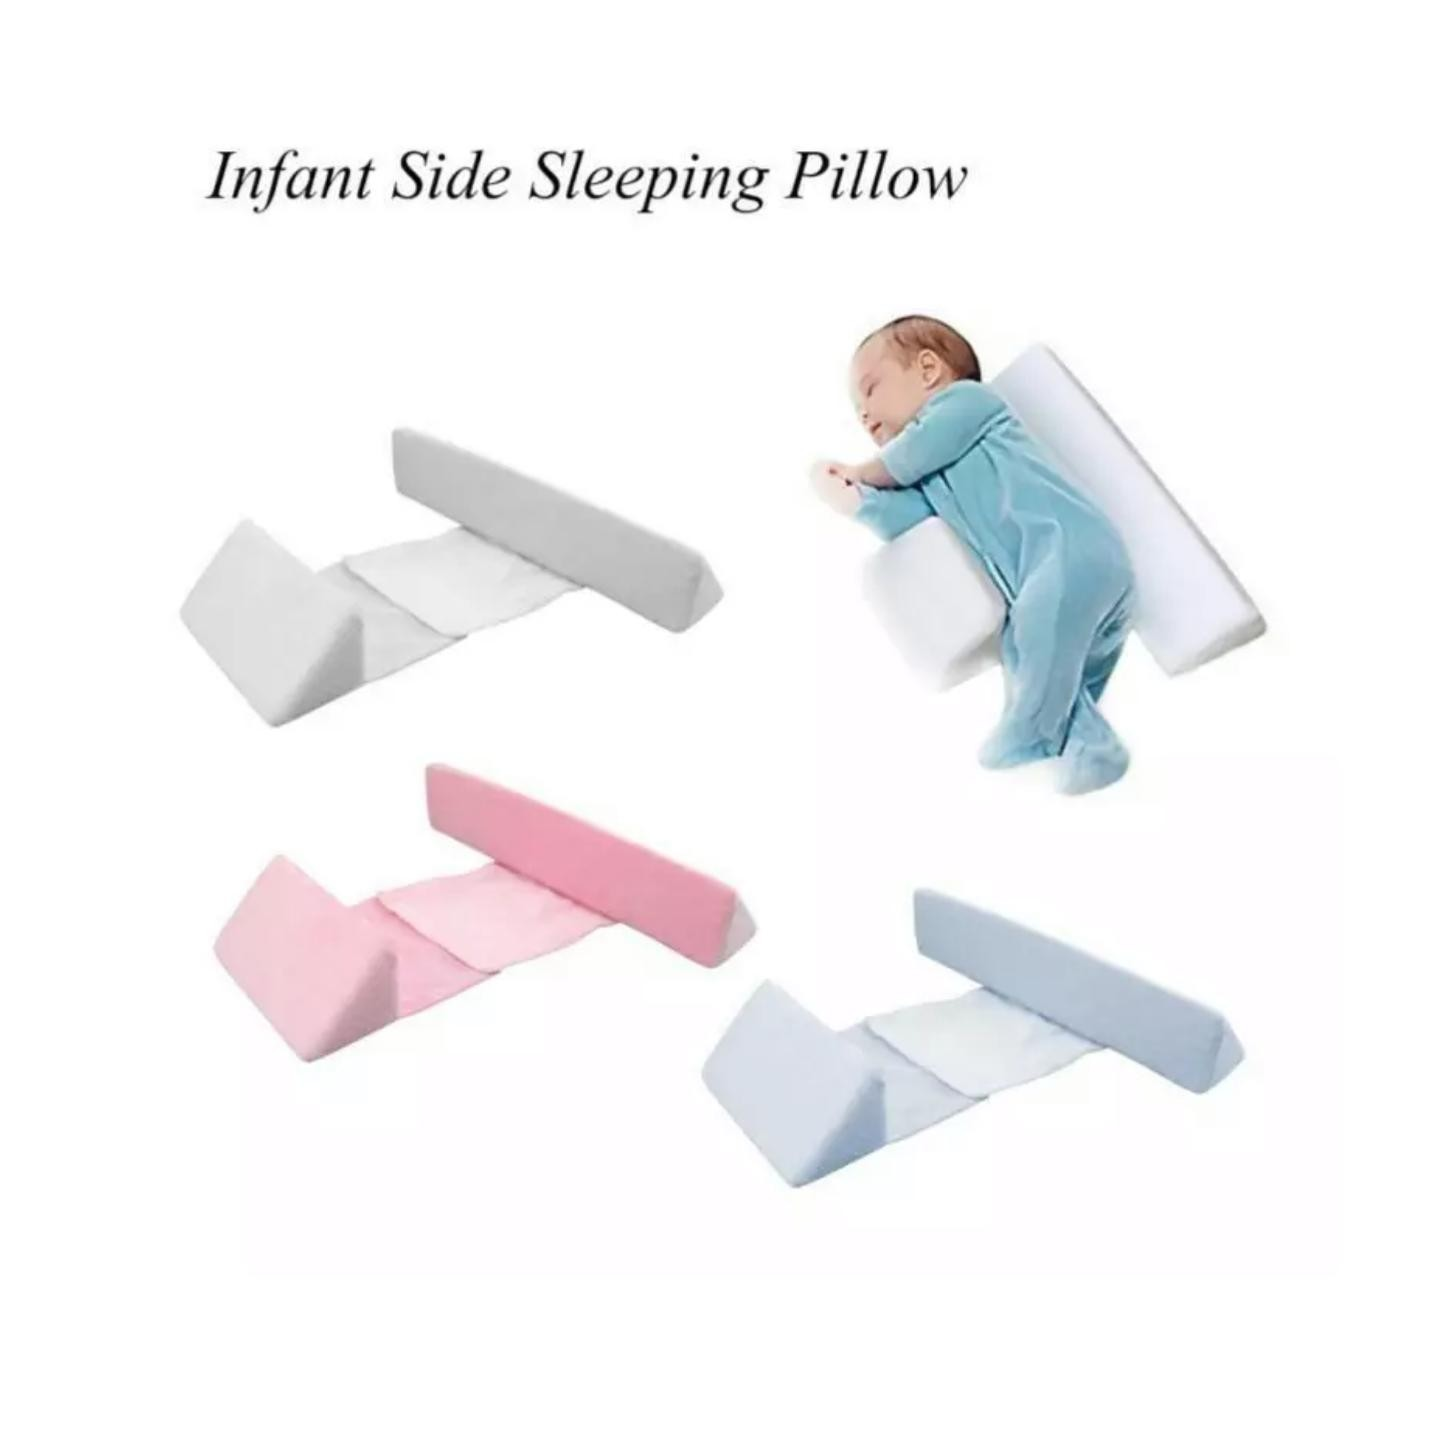 infant side sleeping pillow